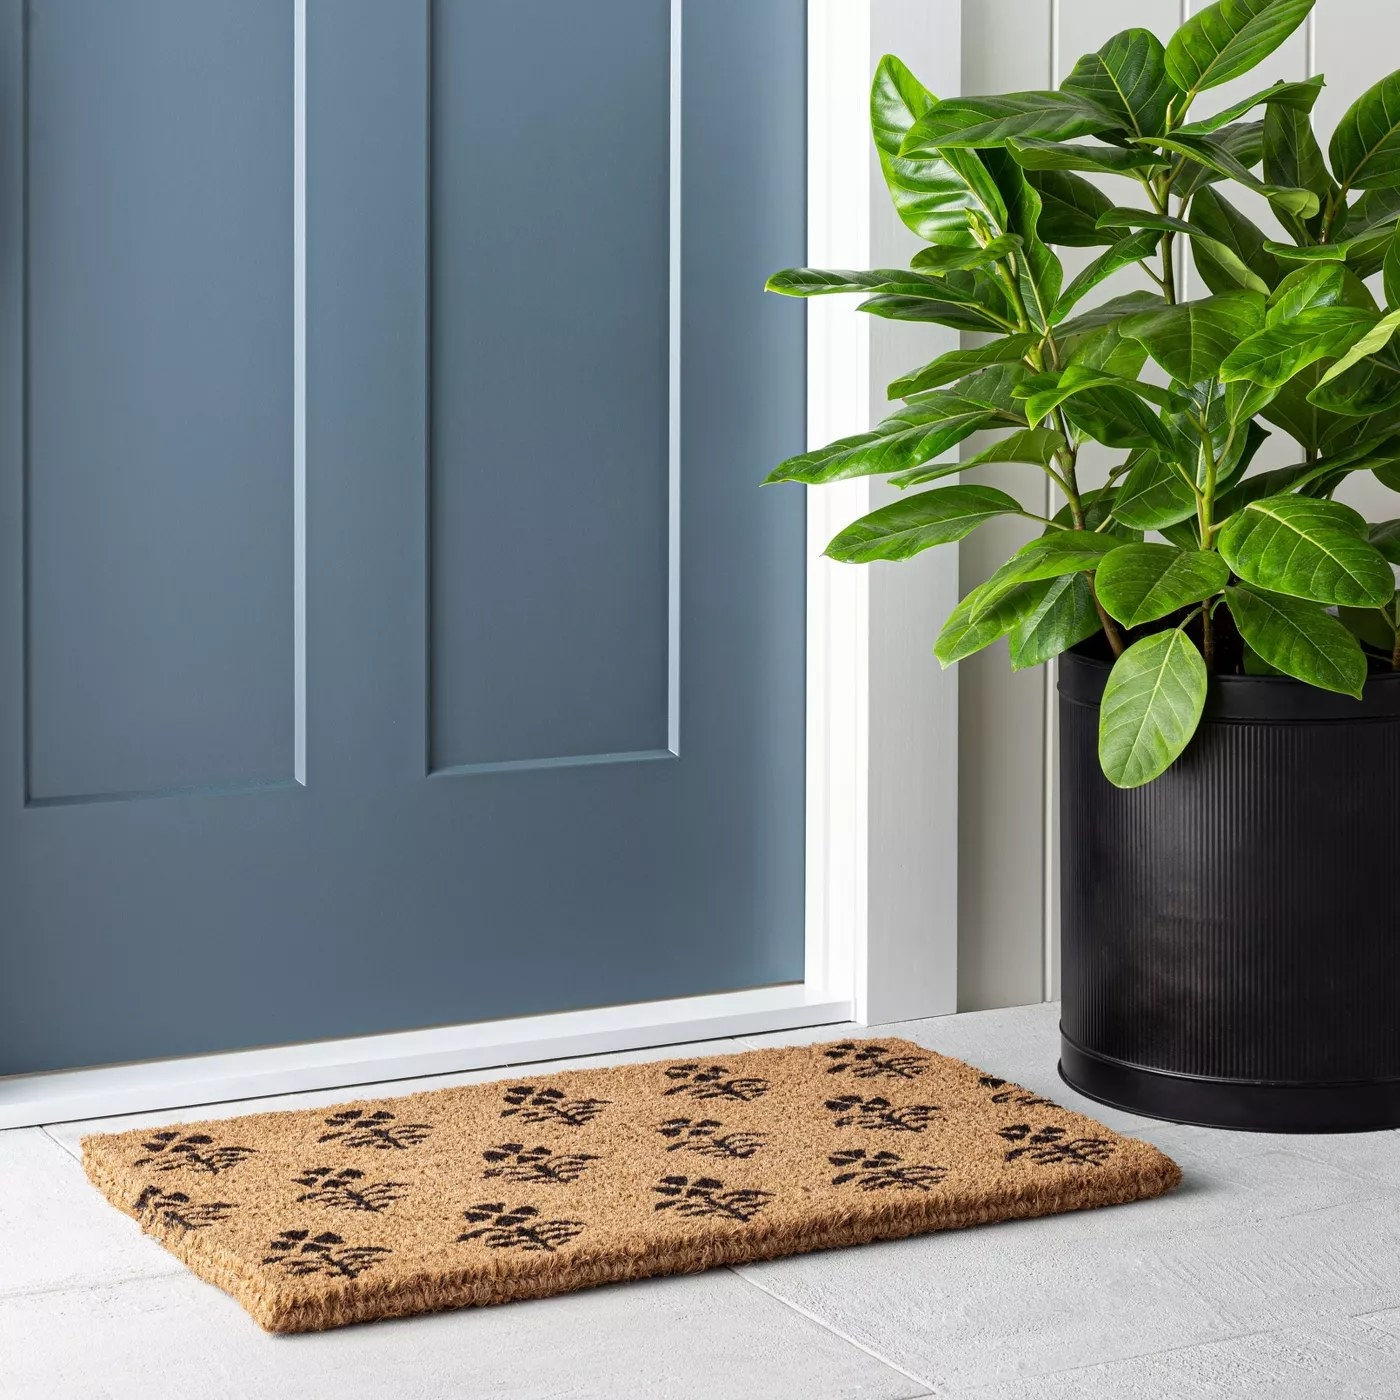 The natural doormat with a black pattern